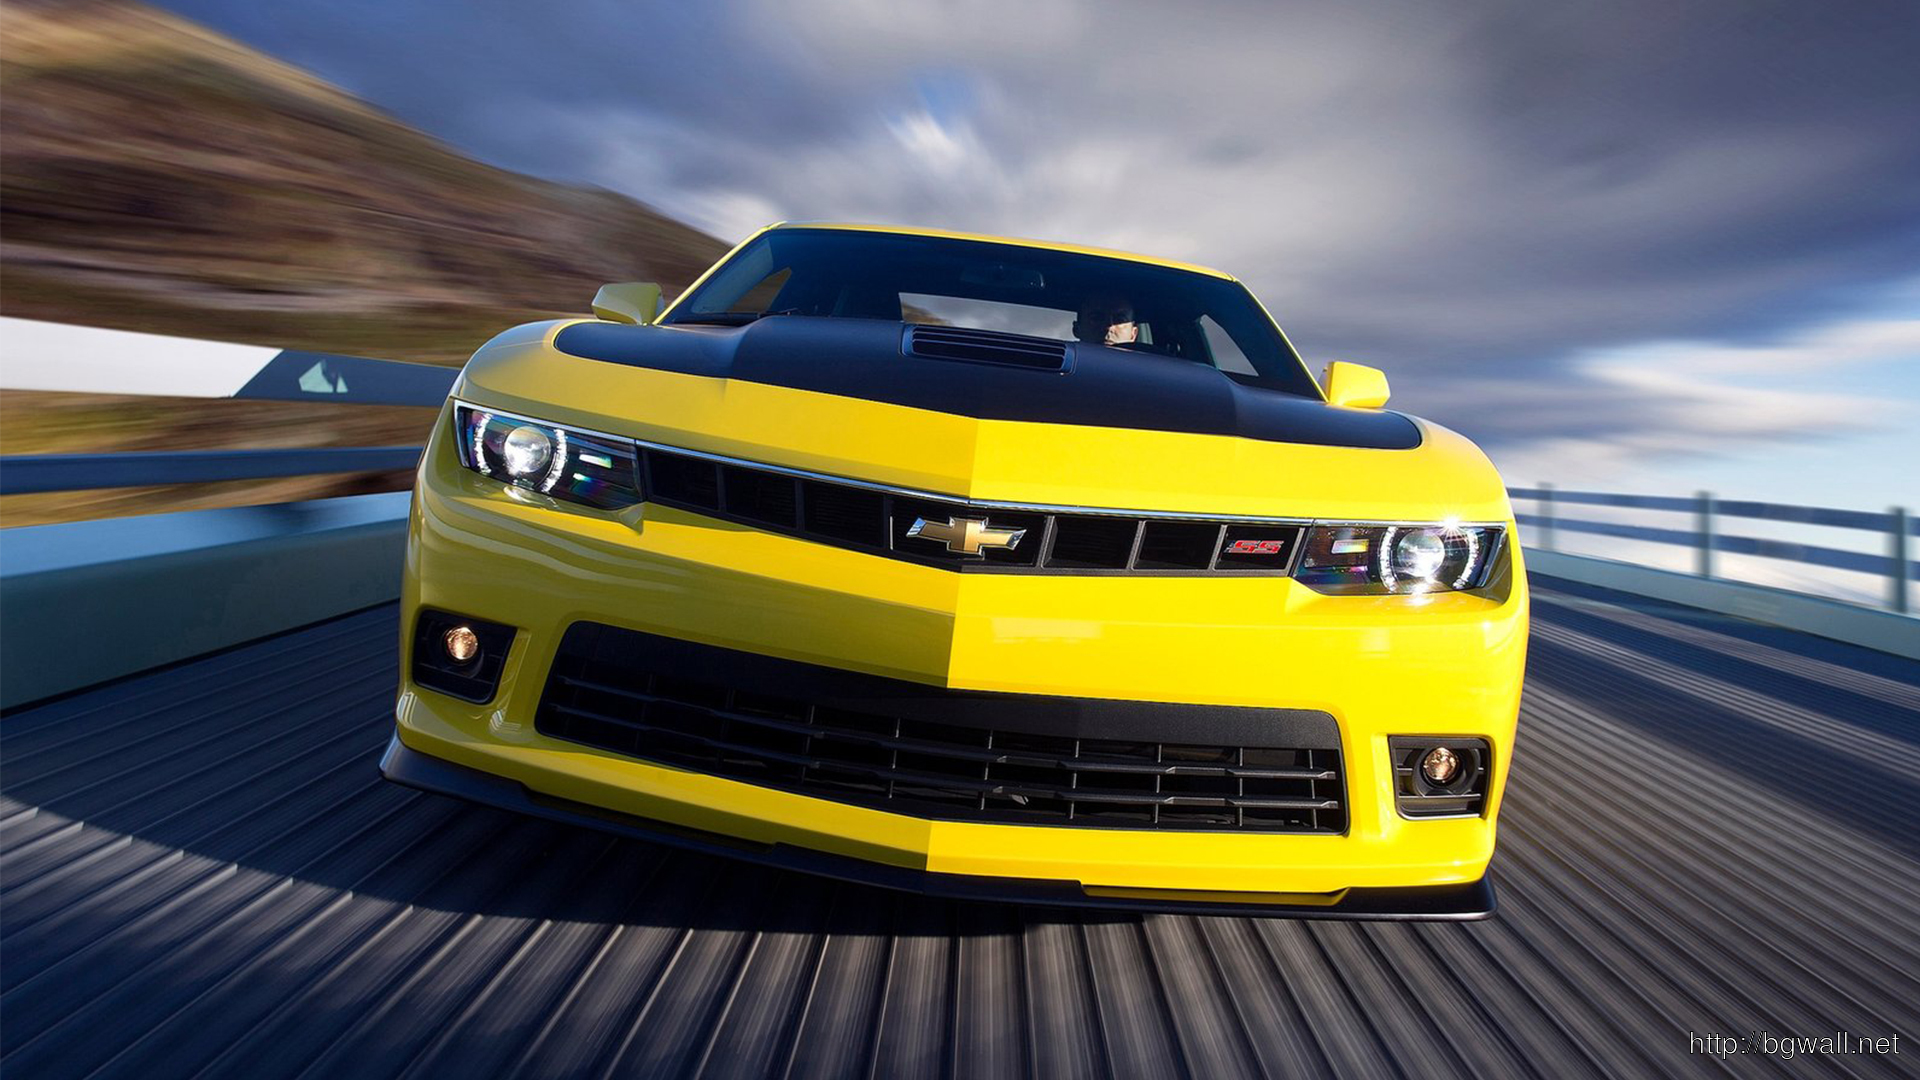 Chevrolet Camaro Laptop Wallpaper Background Wallpaper Hd